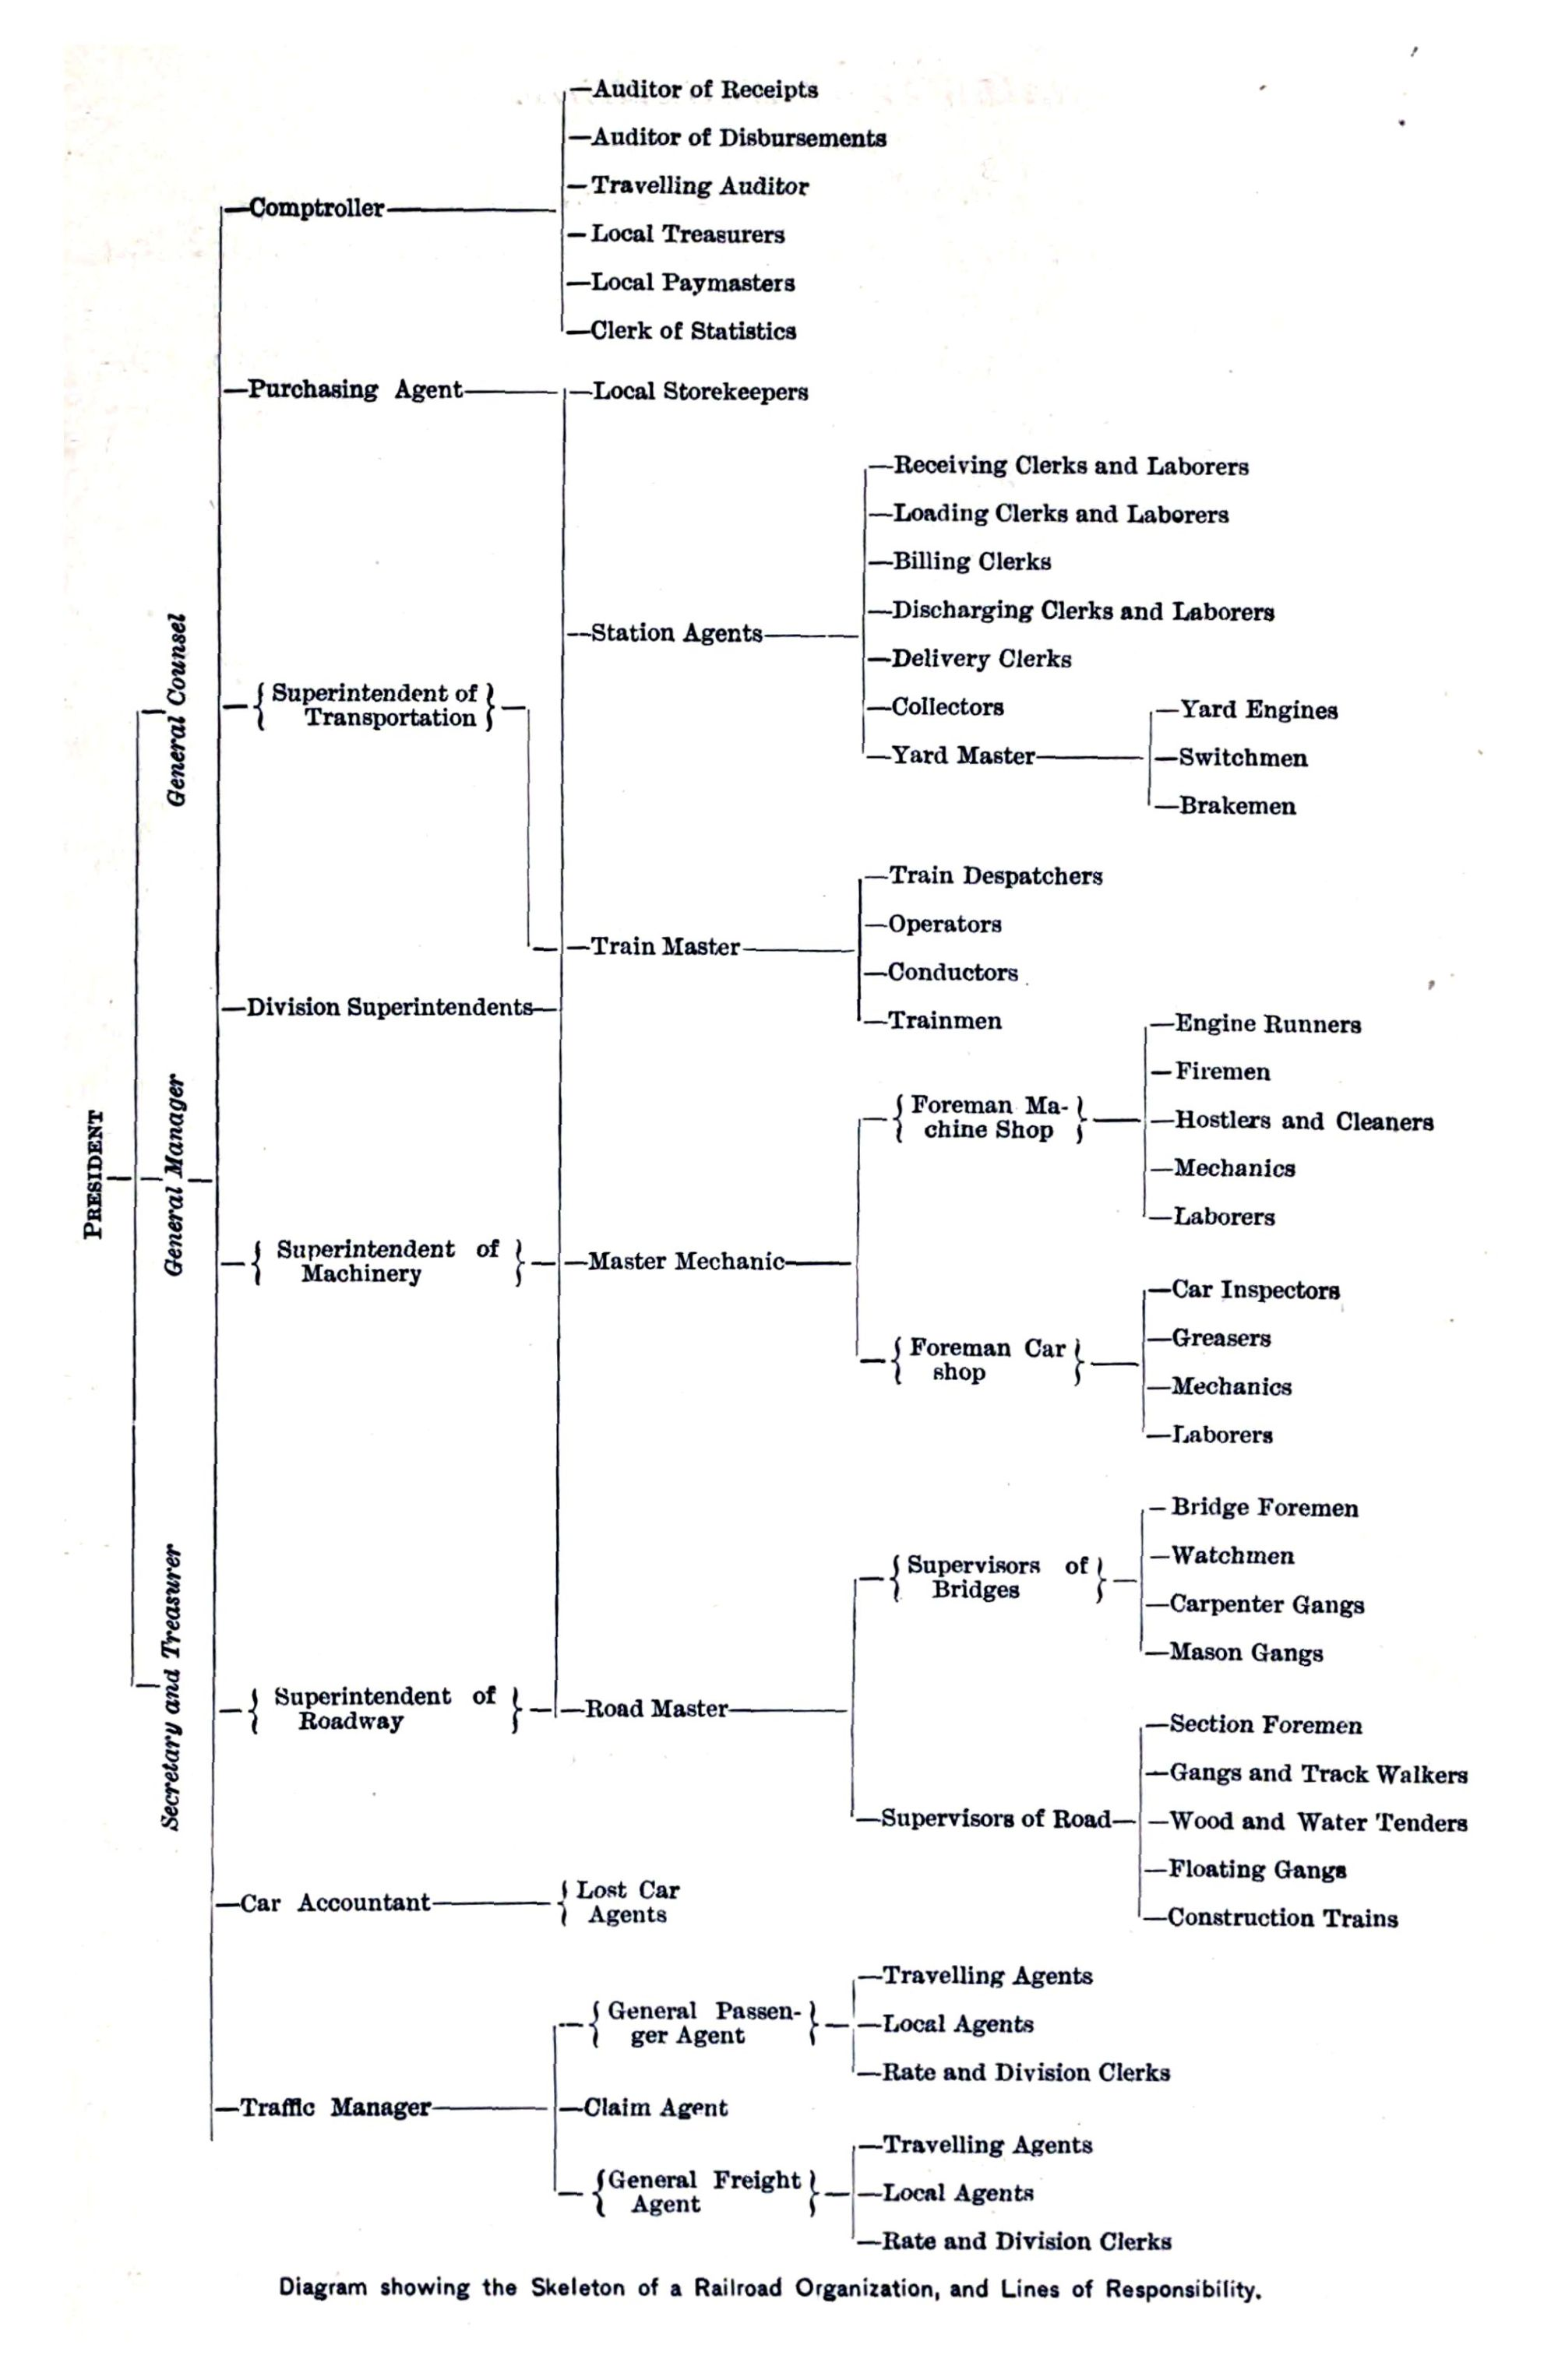 hight resolution of file diagram showing the skeleton of a railroad organization and the lines of responsibility 1889 jpg